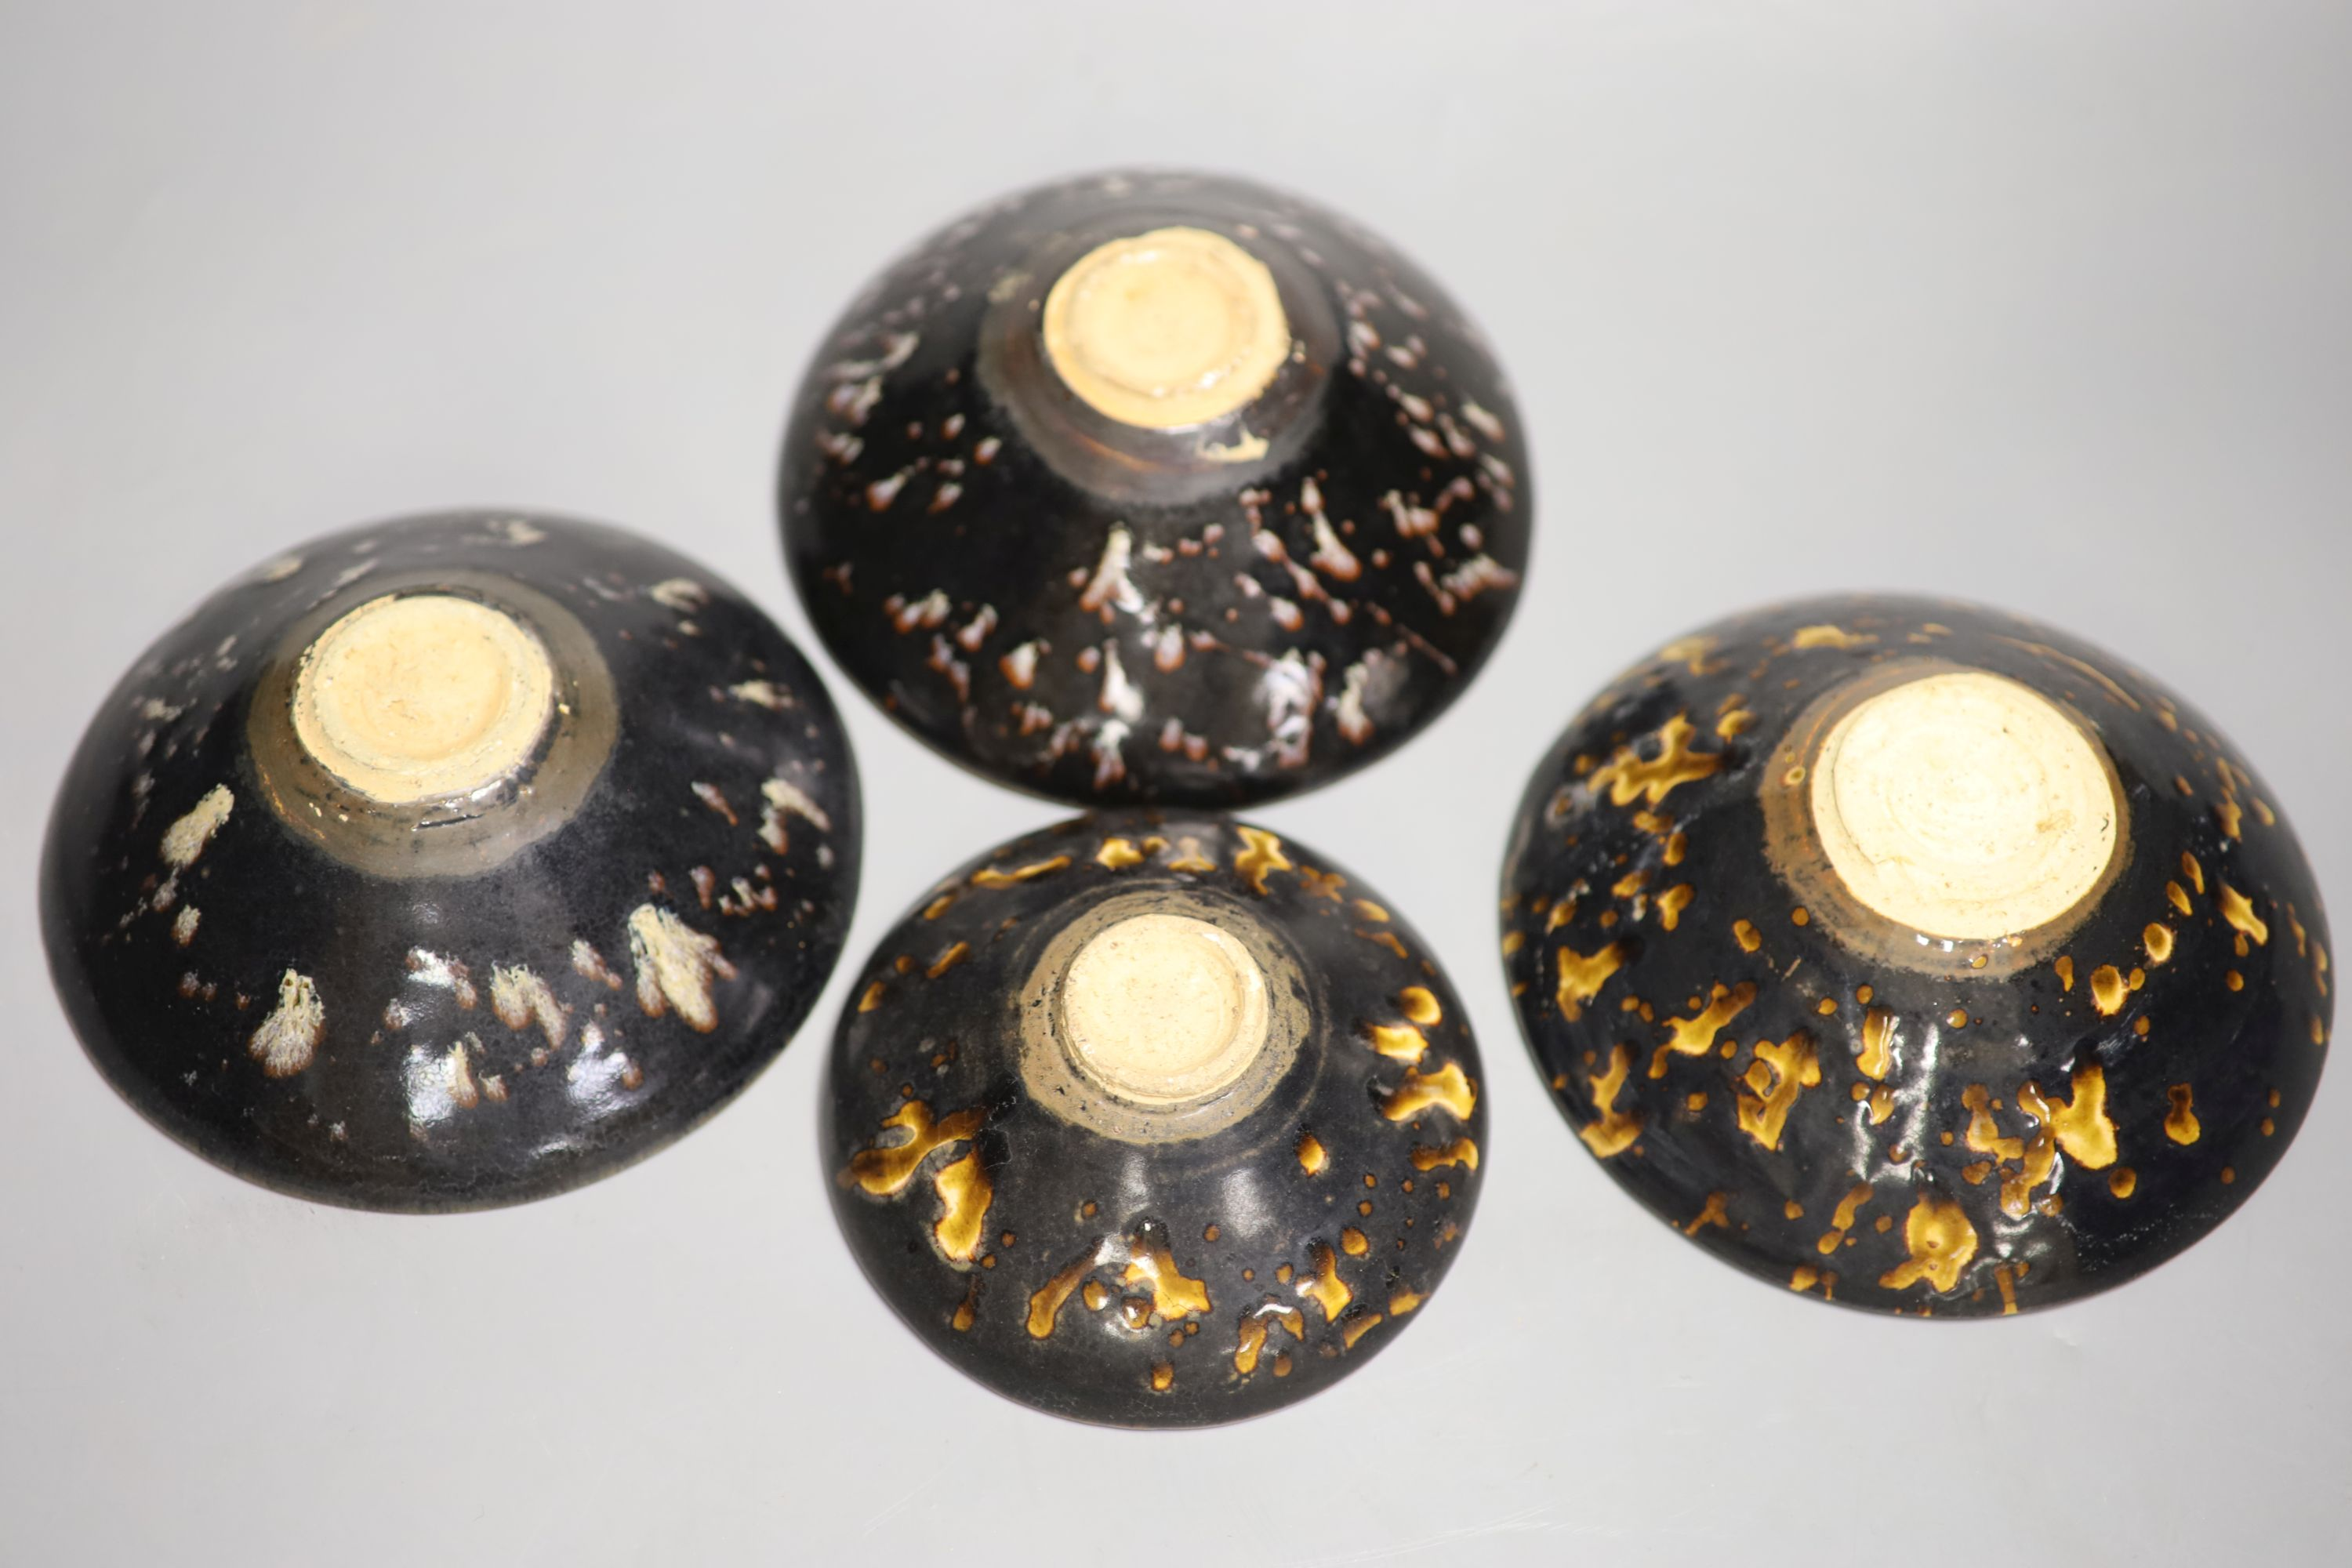 Four Chinese splash glaze bowls, diameter 16cmCONDITION: Good condition. - Image 4 of 4